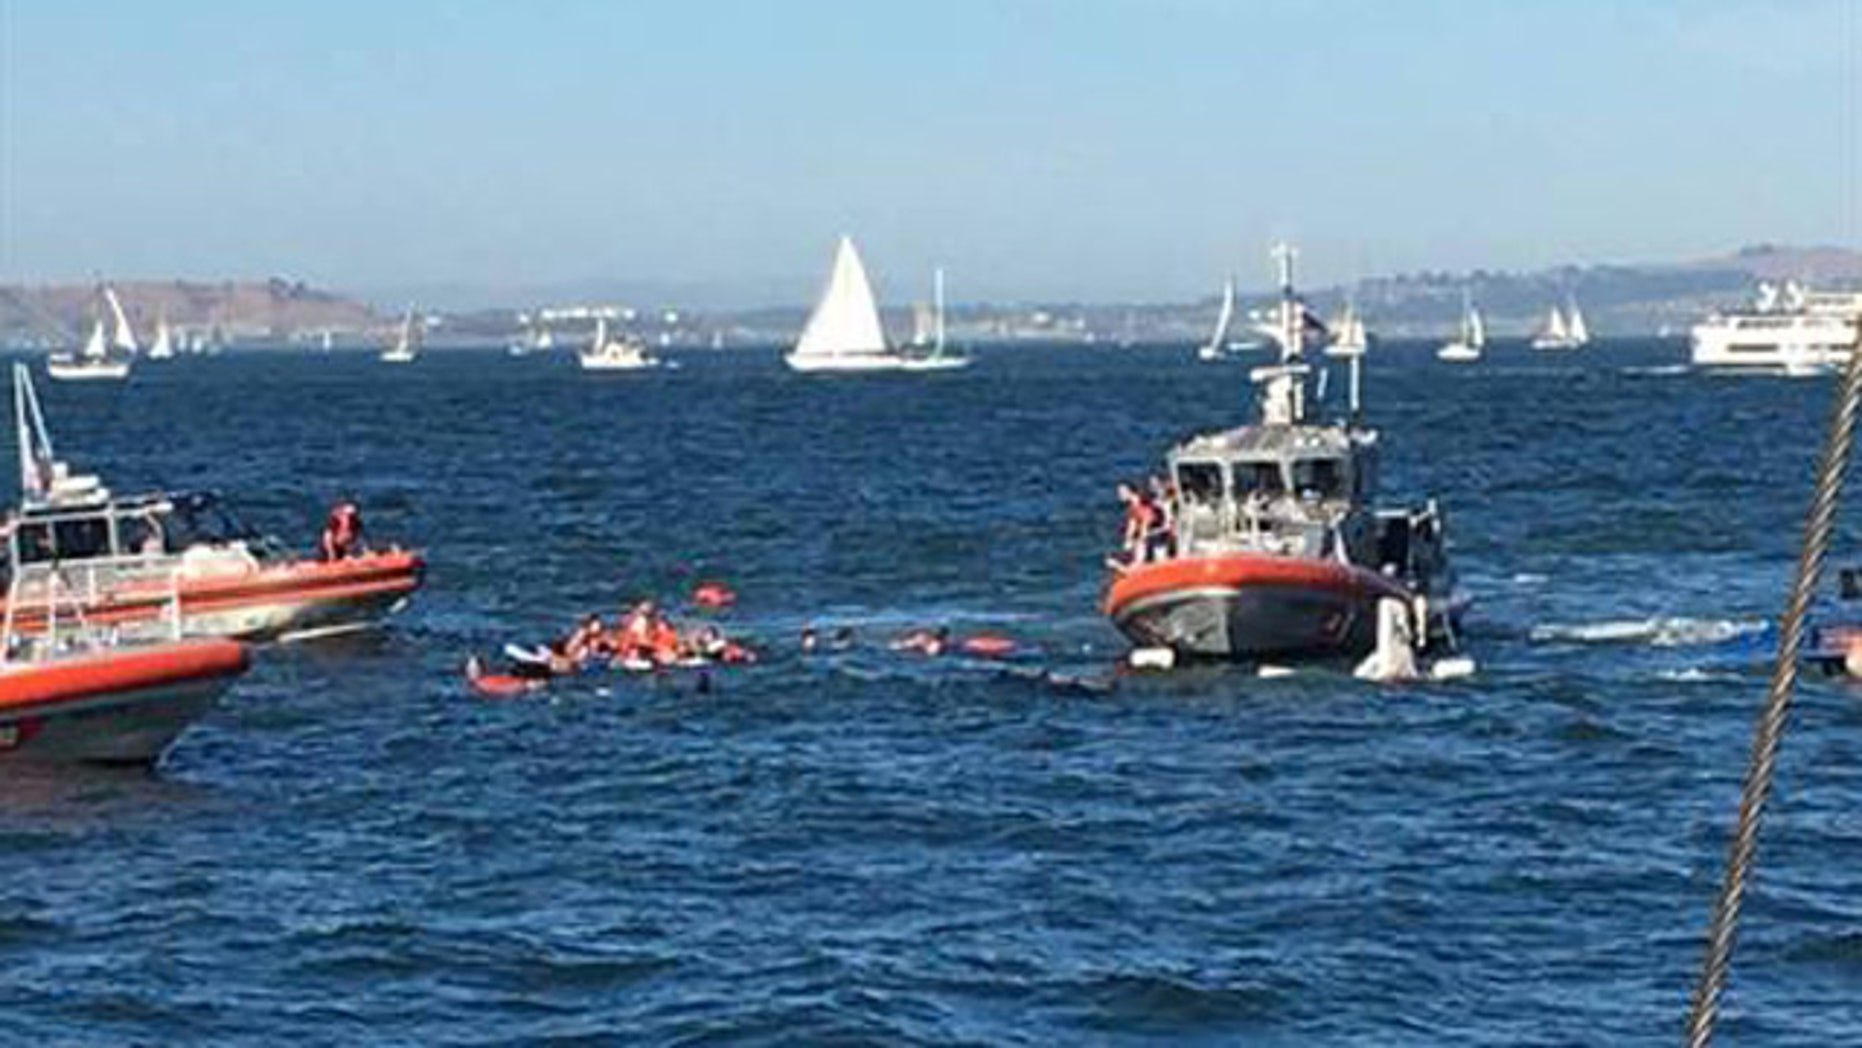 Oct. 8, 2016: Rescue boats approach passengers on a boat the capsized in San Francisco Bay Saturday. All 30 passengers were accounted for Saturday night